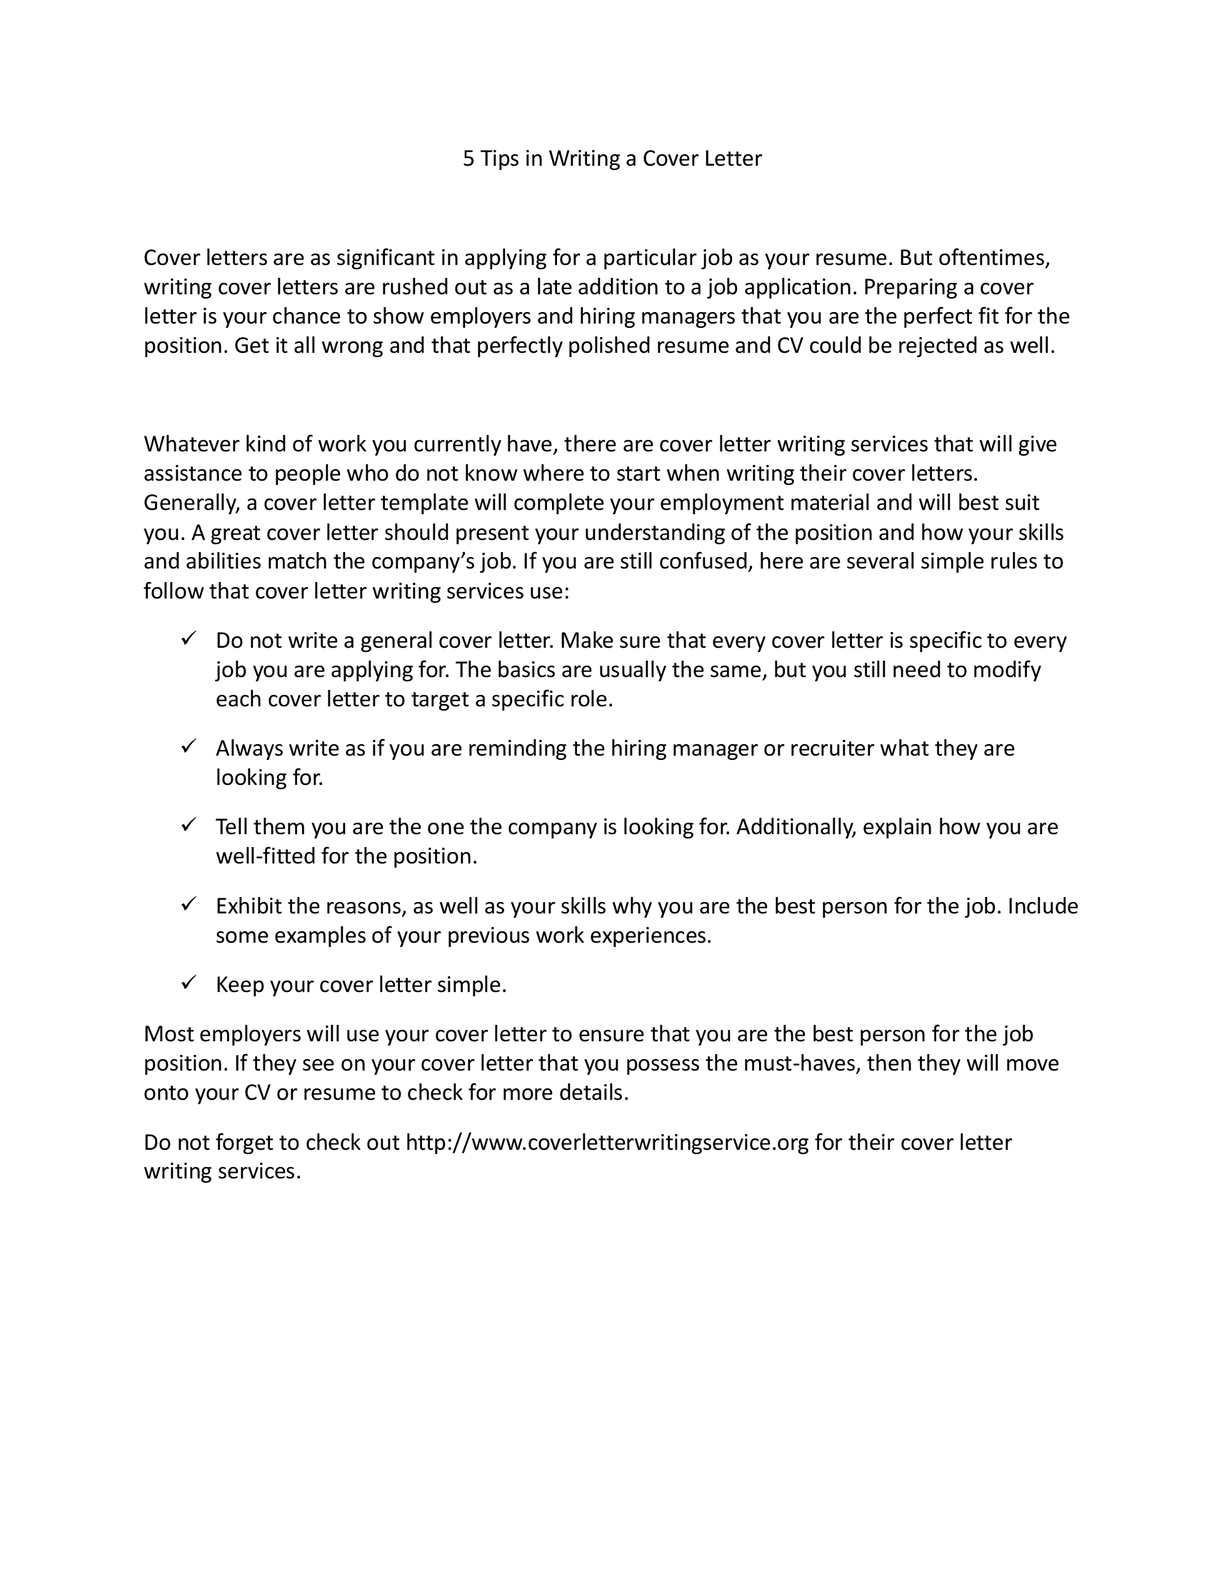 Calameo 5 Tips In Writing A Cover Letter